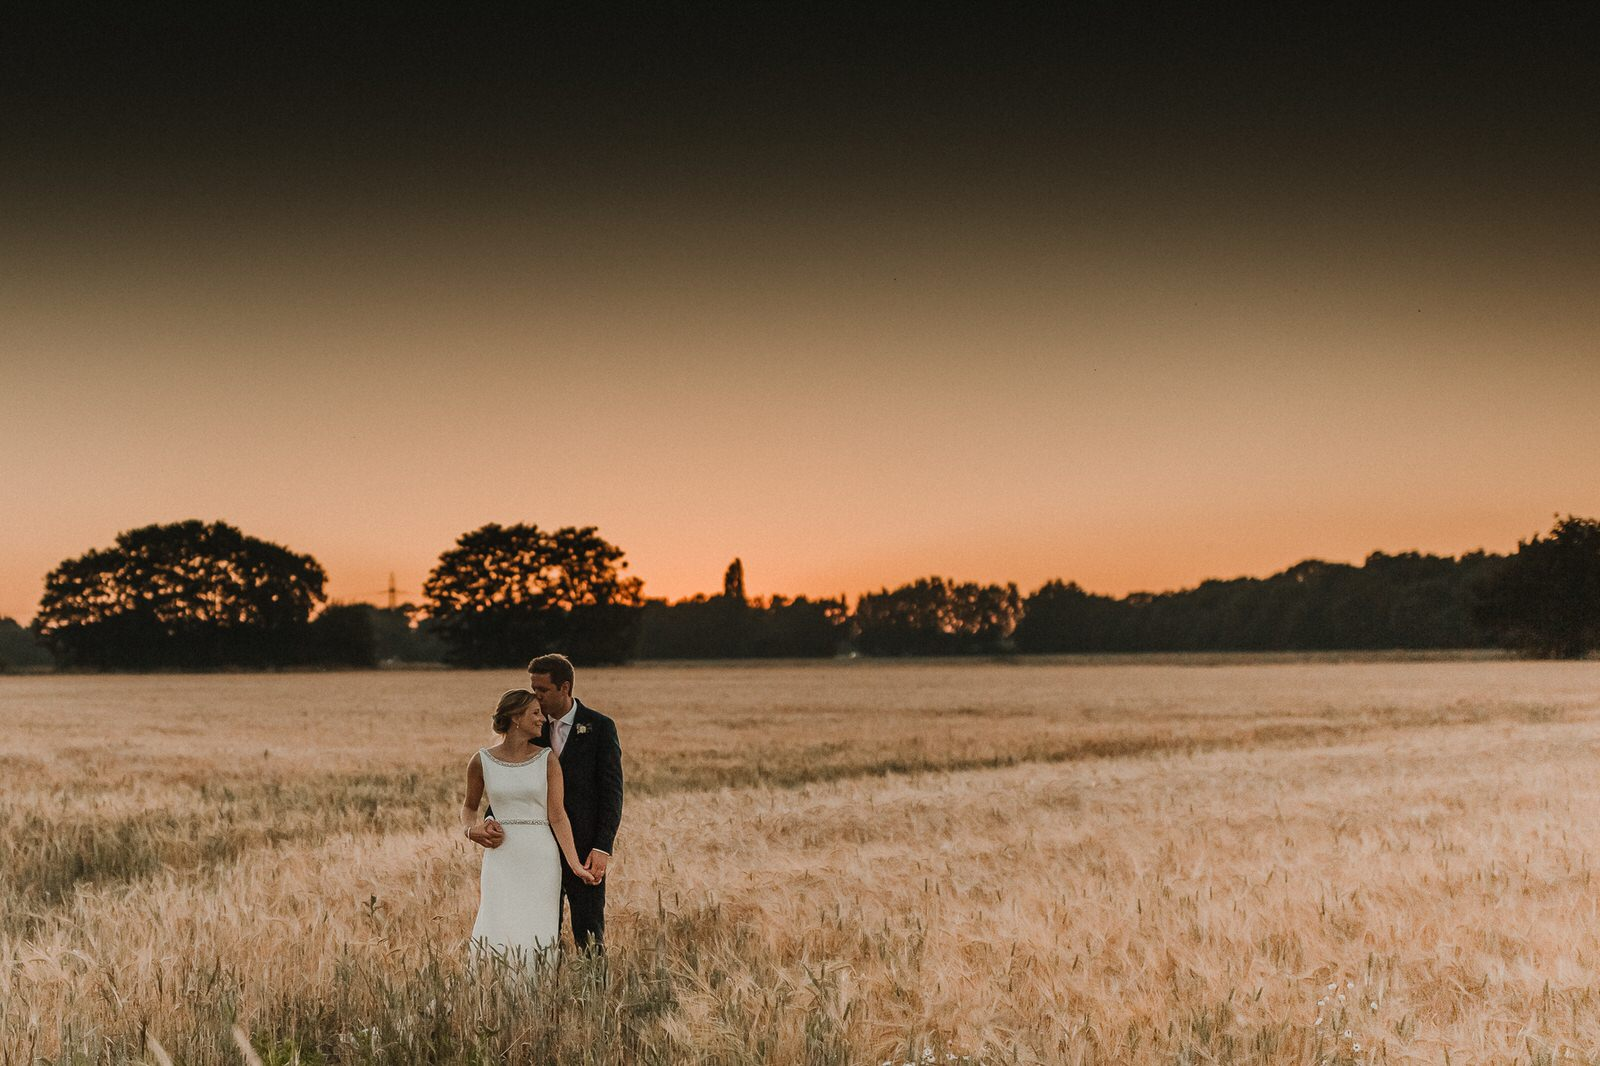 couple standing in a wheat field holding hands